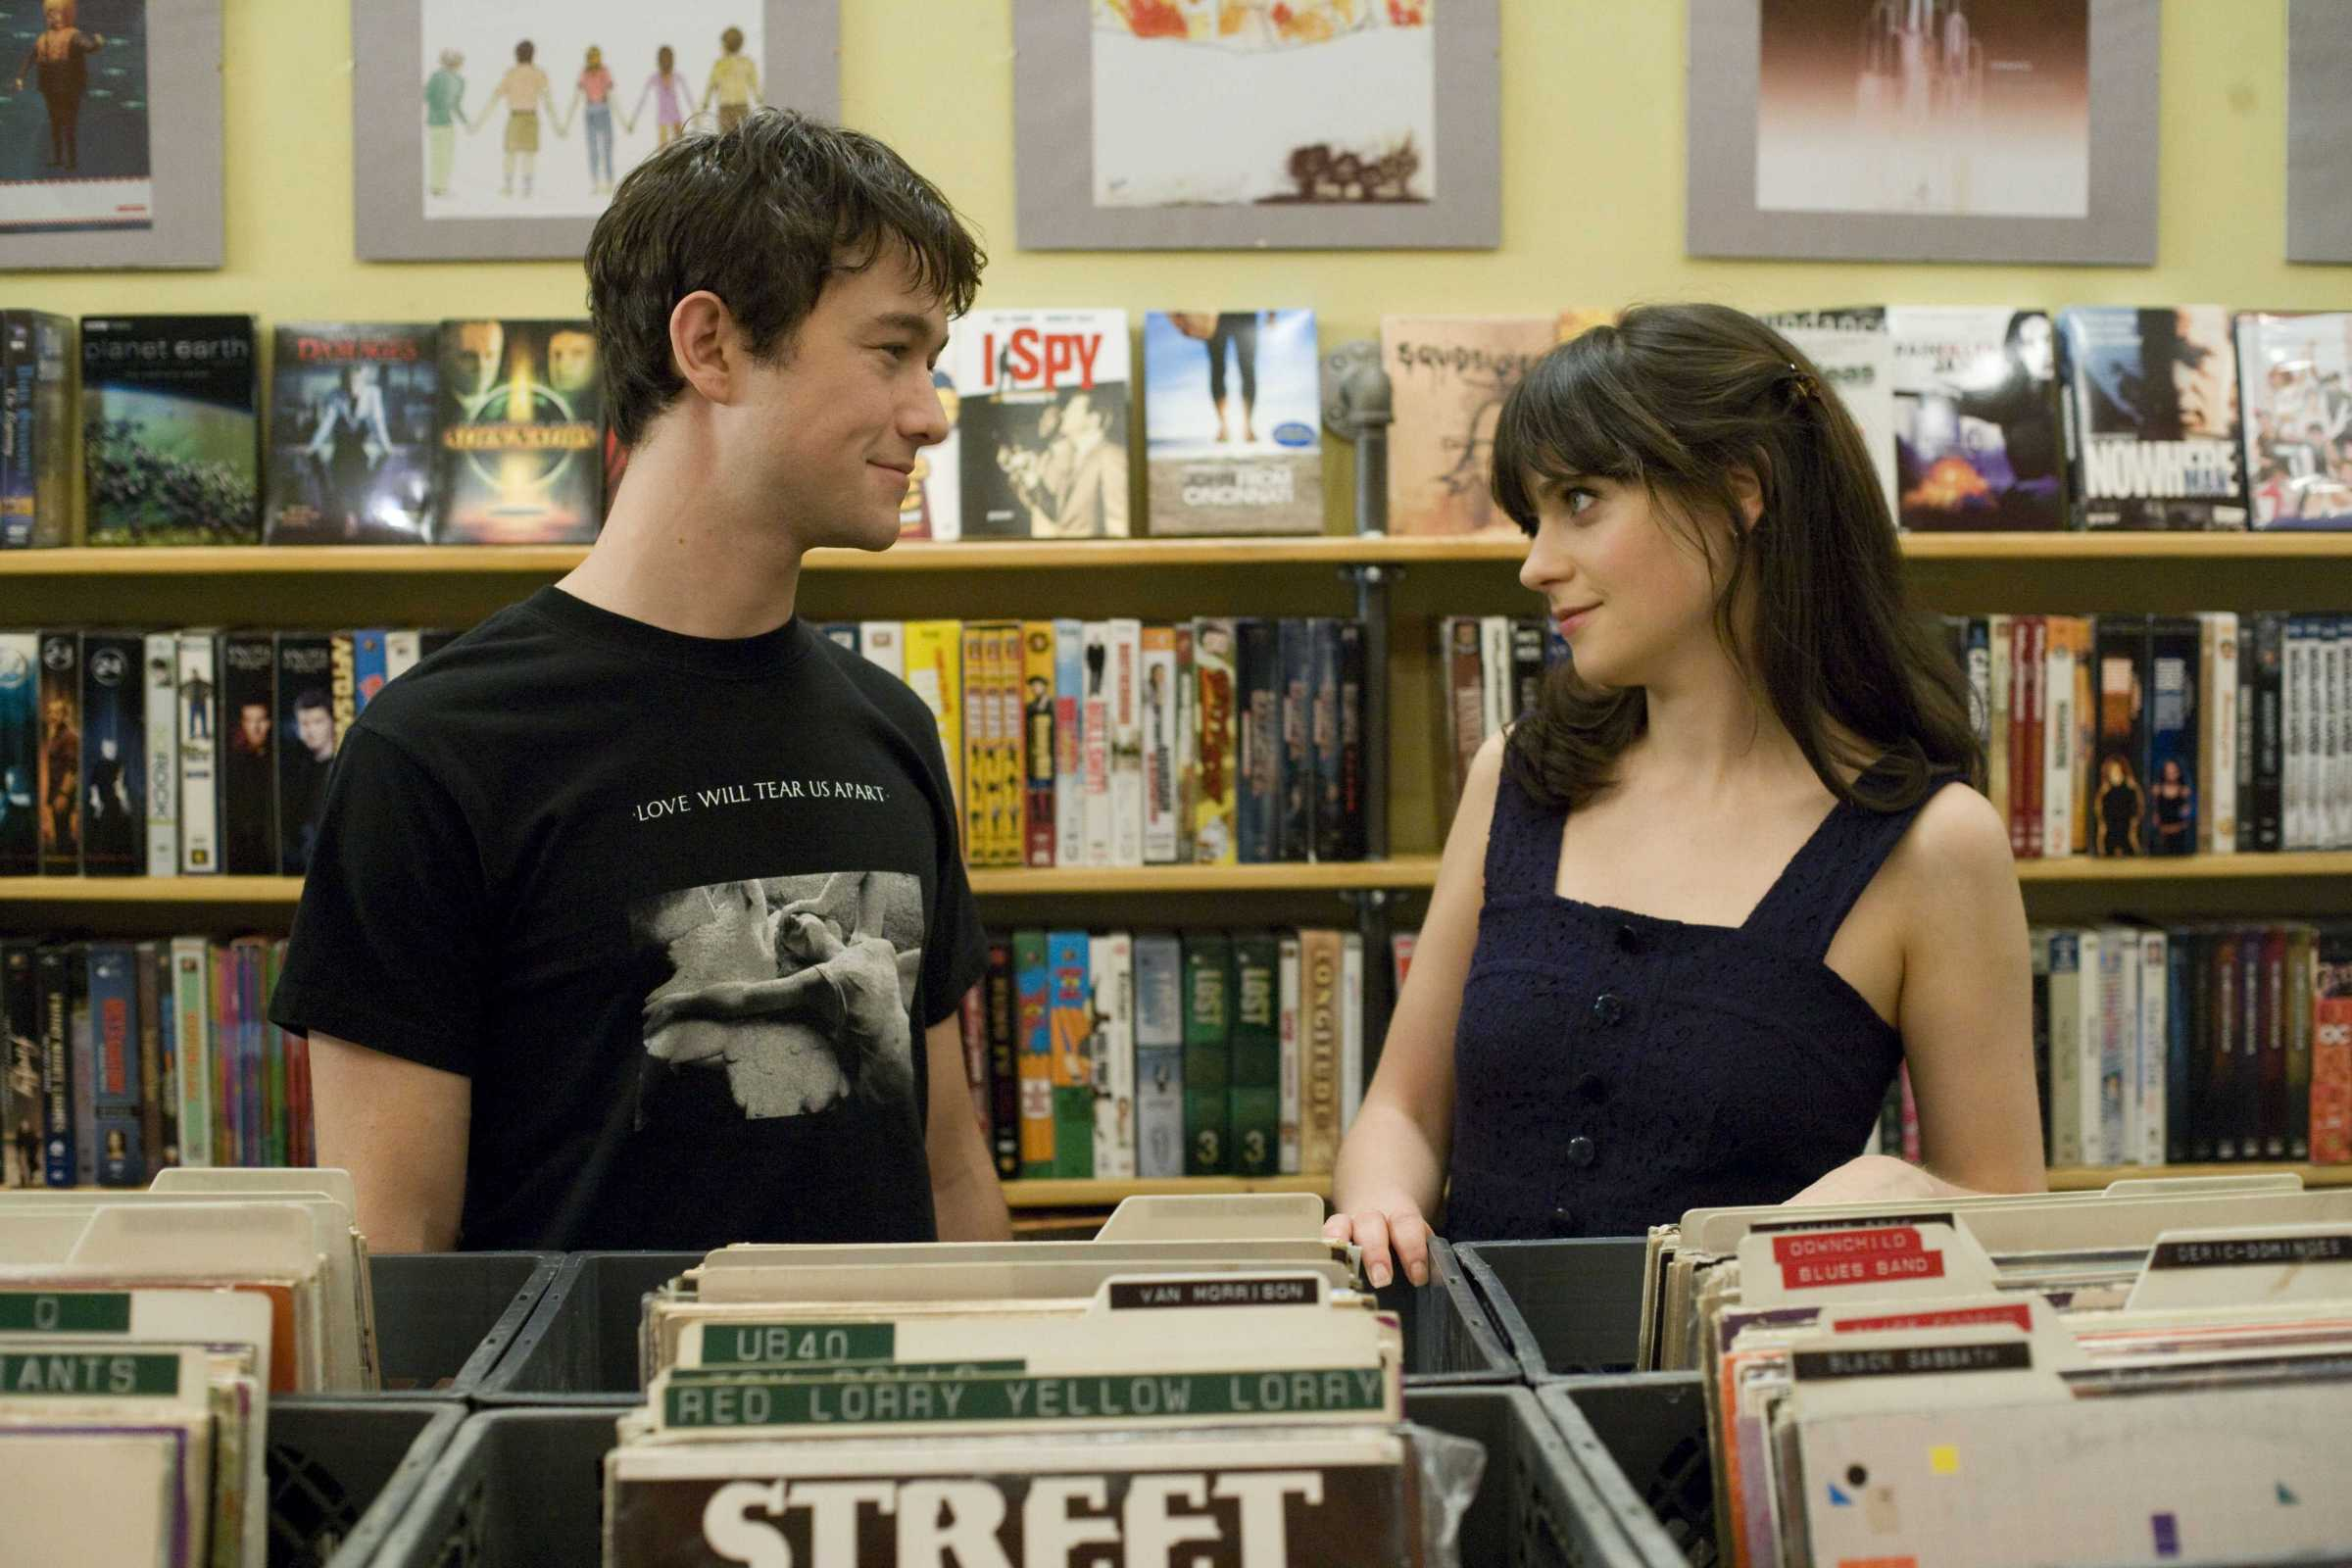 500 Days of Summer 2_0.jpg